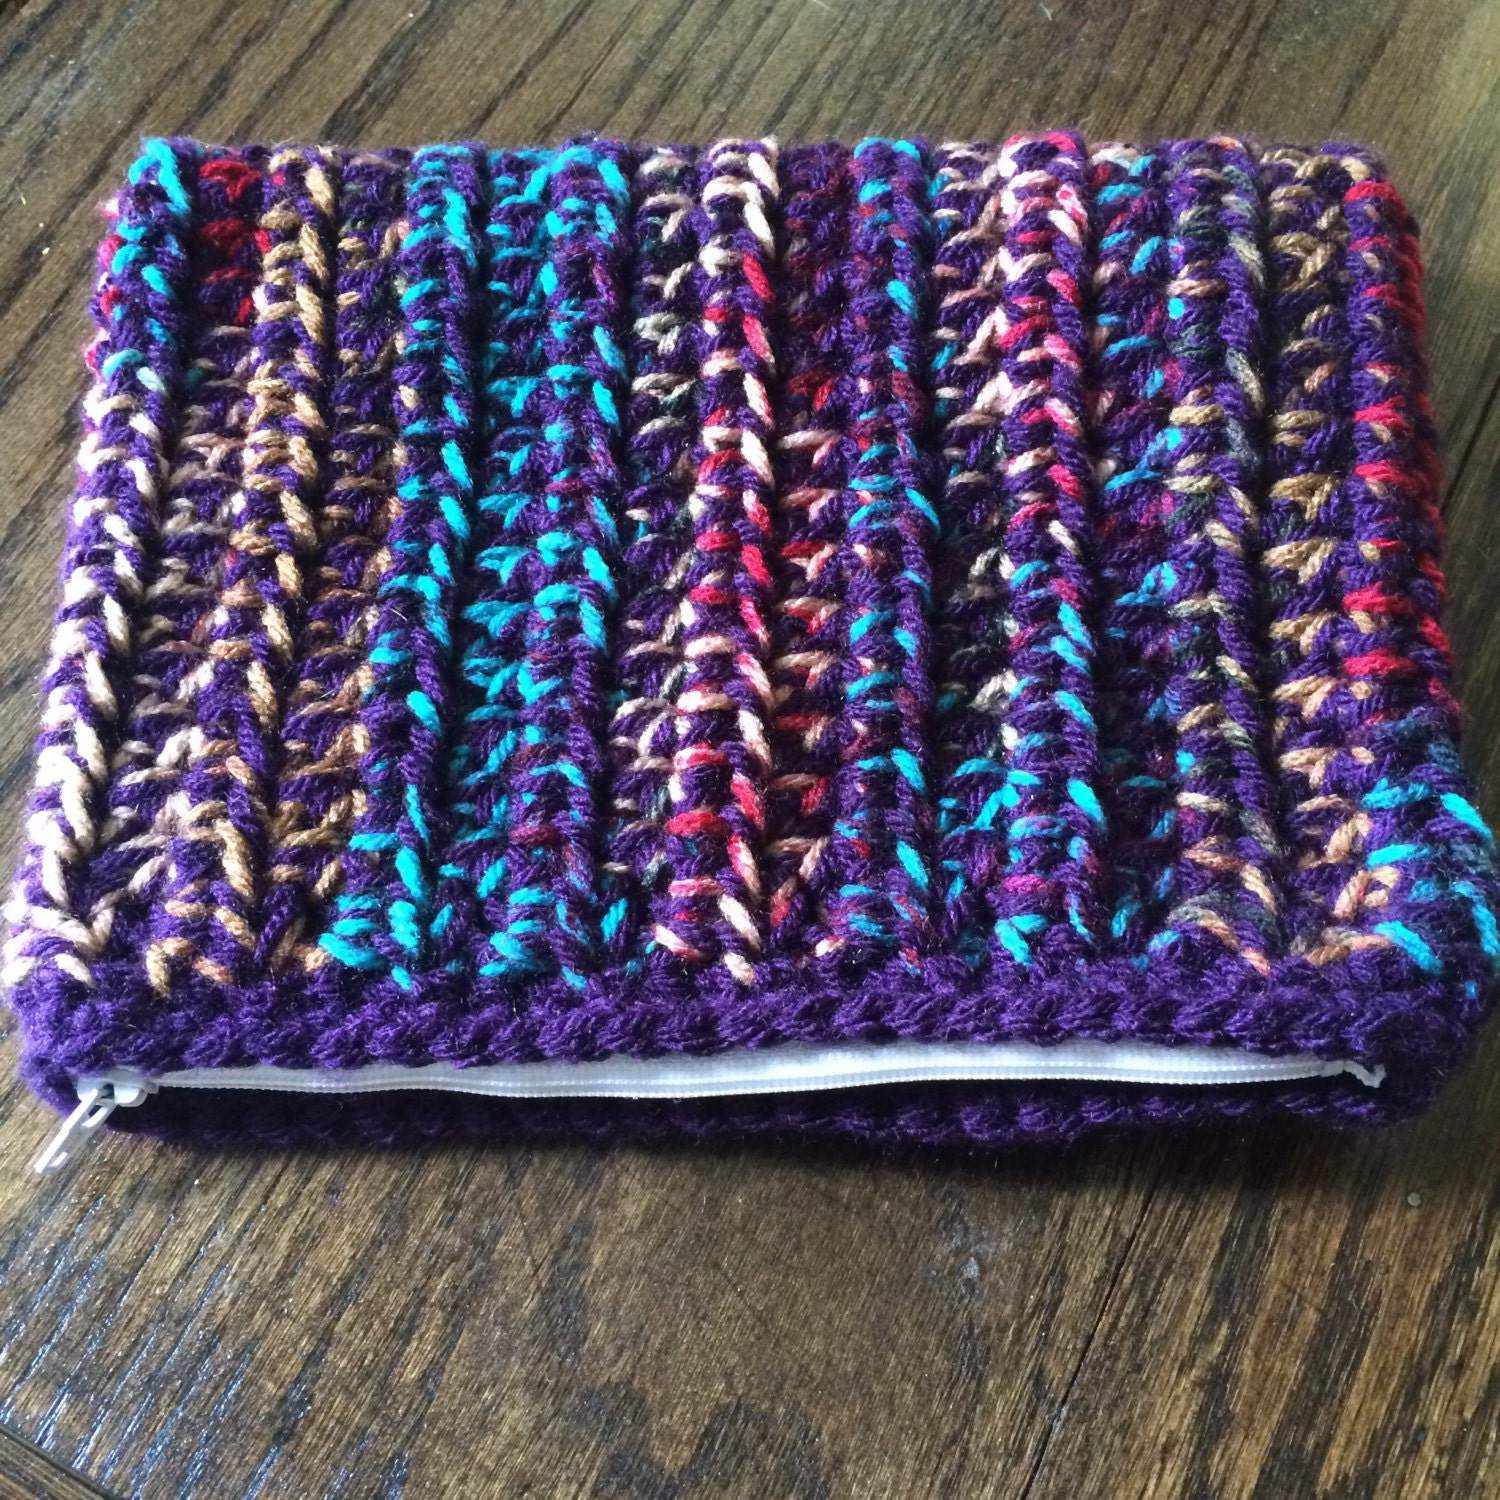 Crochet zipper pouch. Small crochet bag by krsmith20 on Etsy